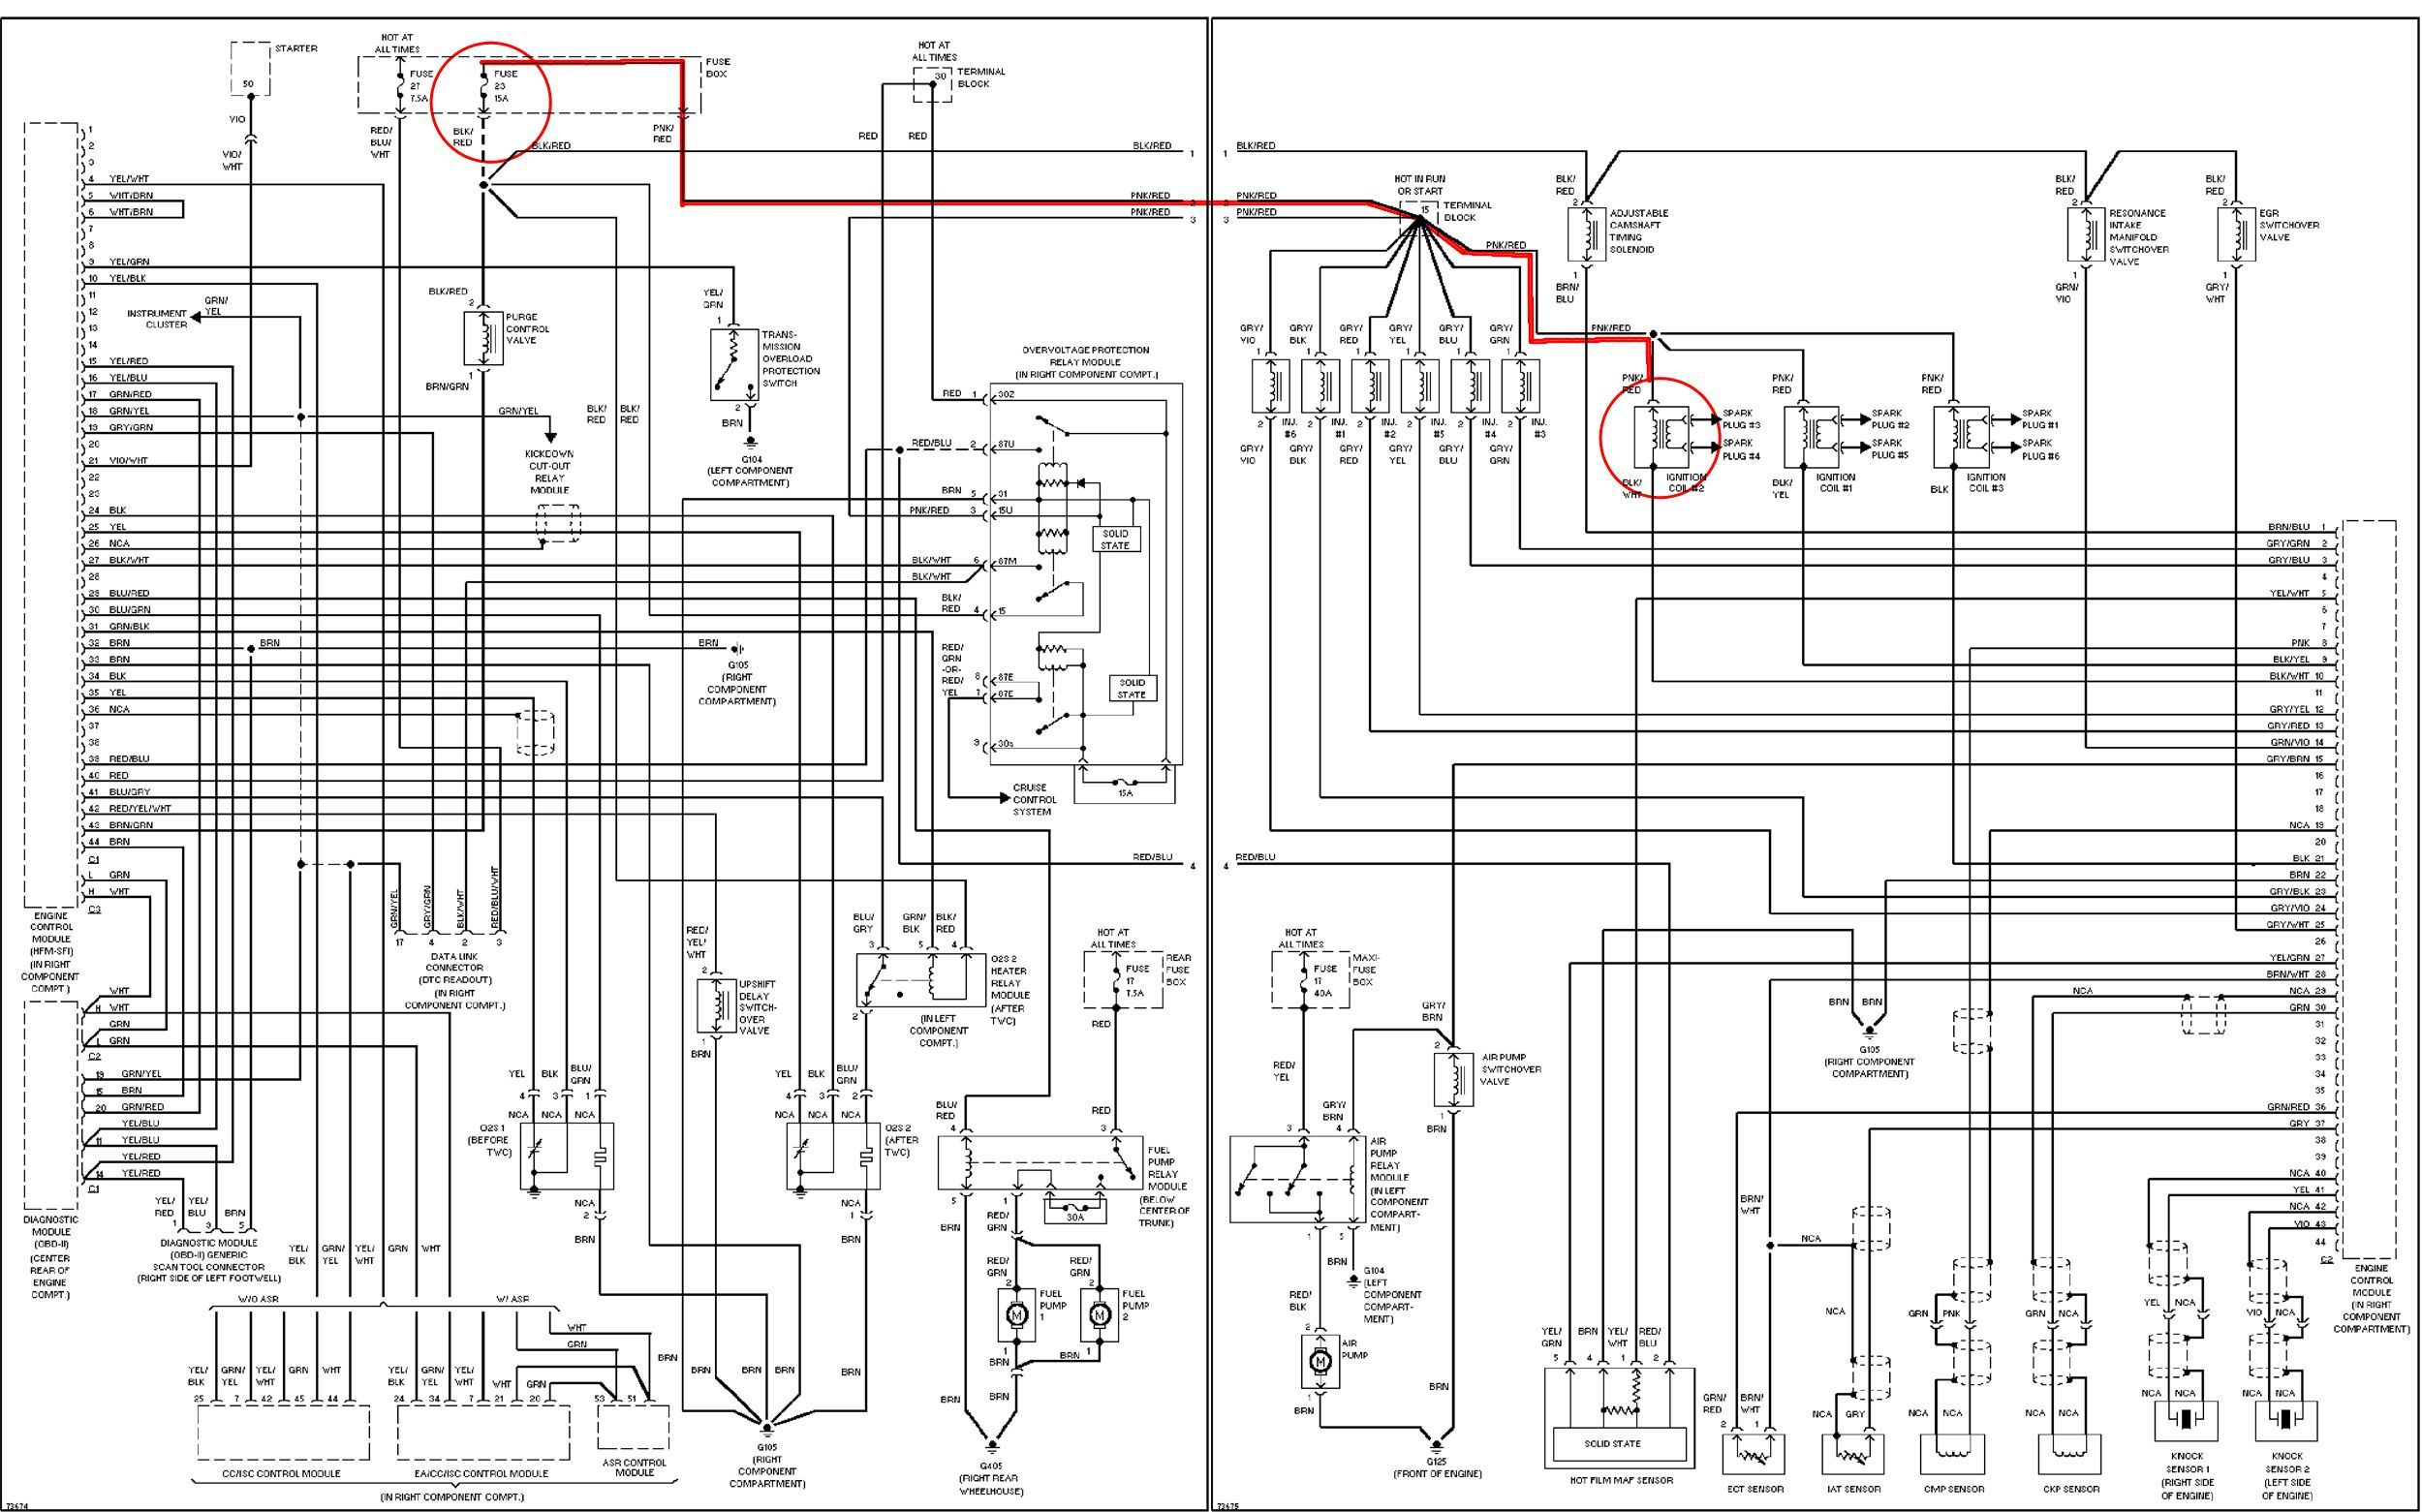 mercedes wiring diagram trusted wiring diagram rh 20 nl schoenheitsbrieftaube de mercedes w211 headlight wiring diagram [ 2500 x 1561 Pixel ]